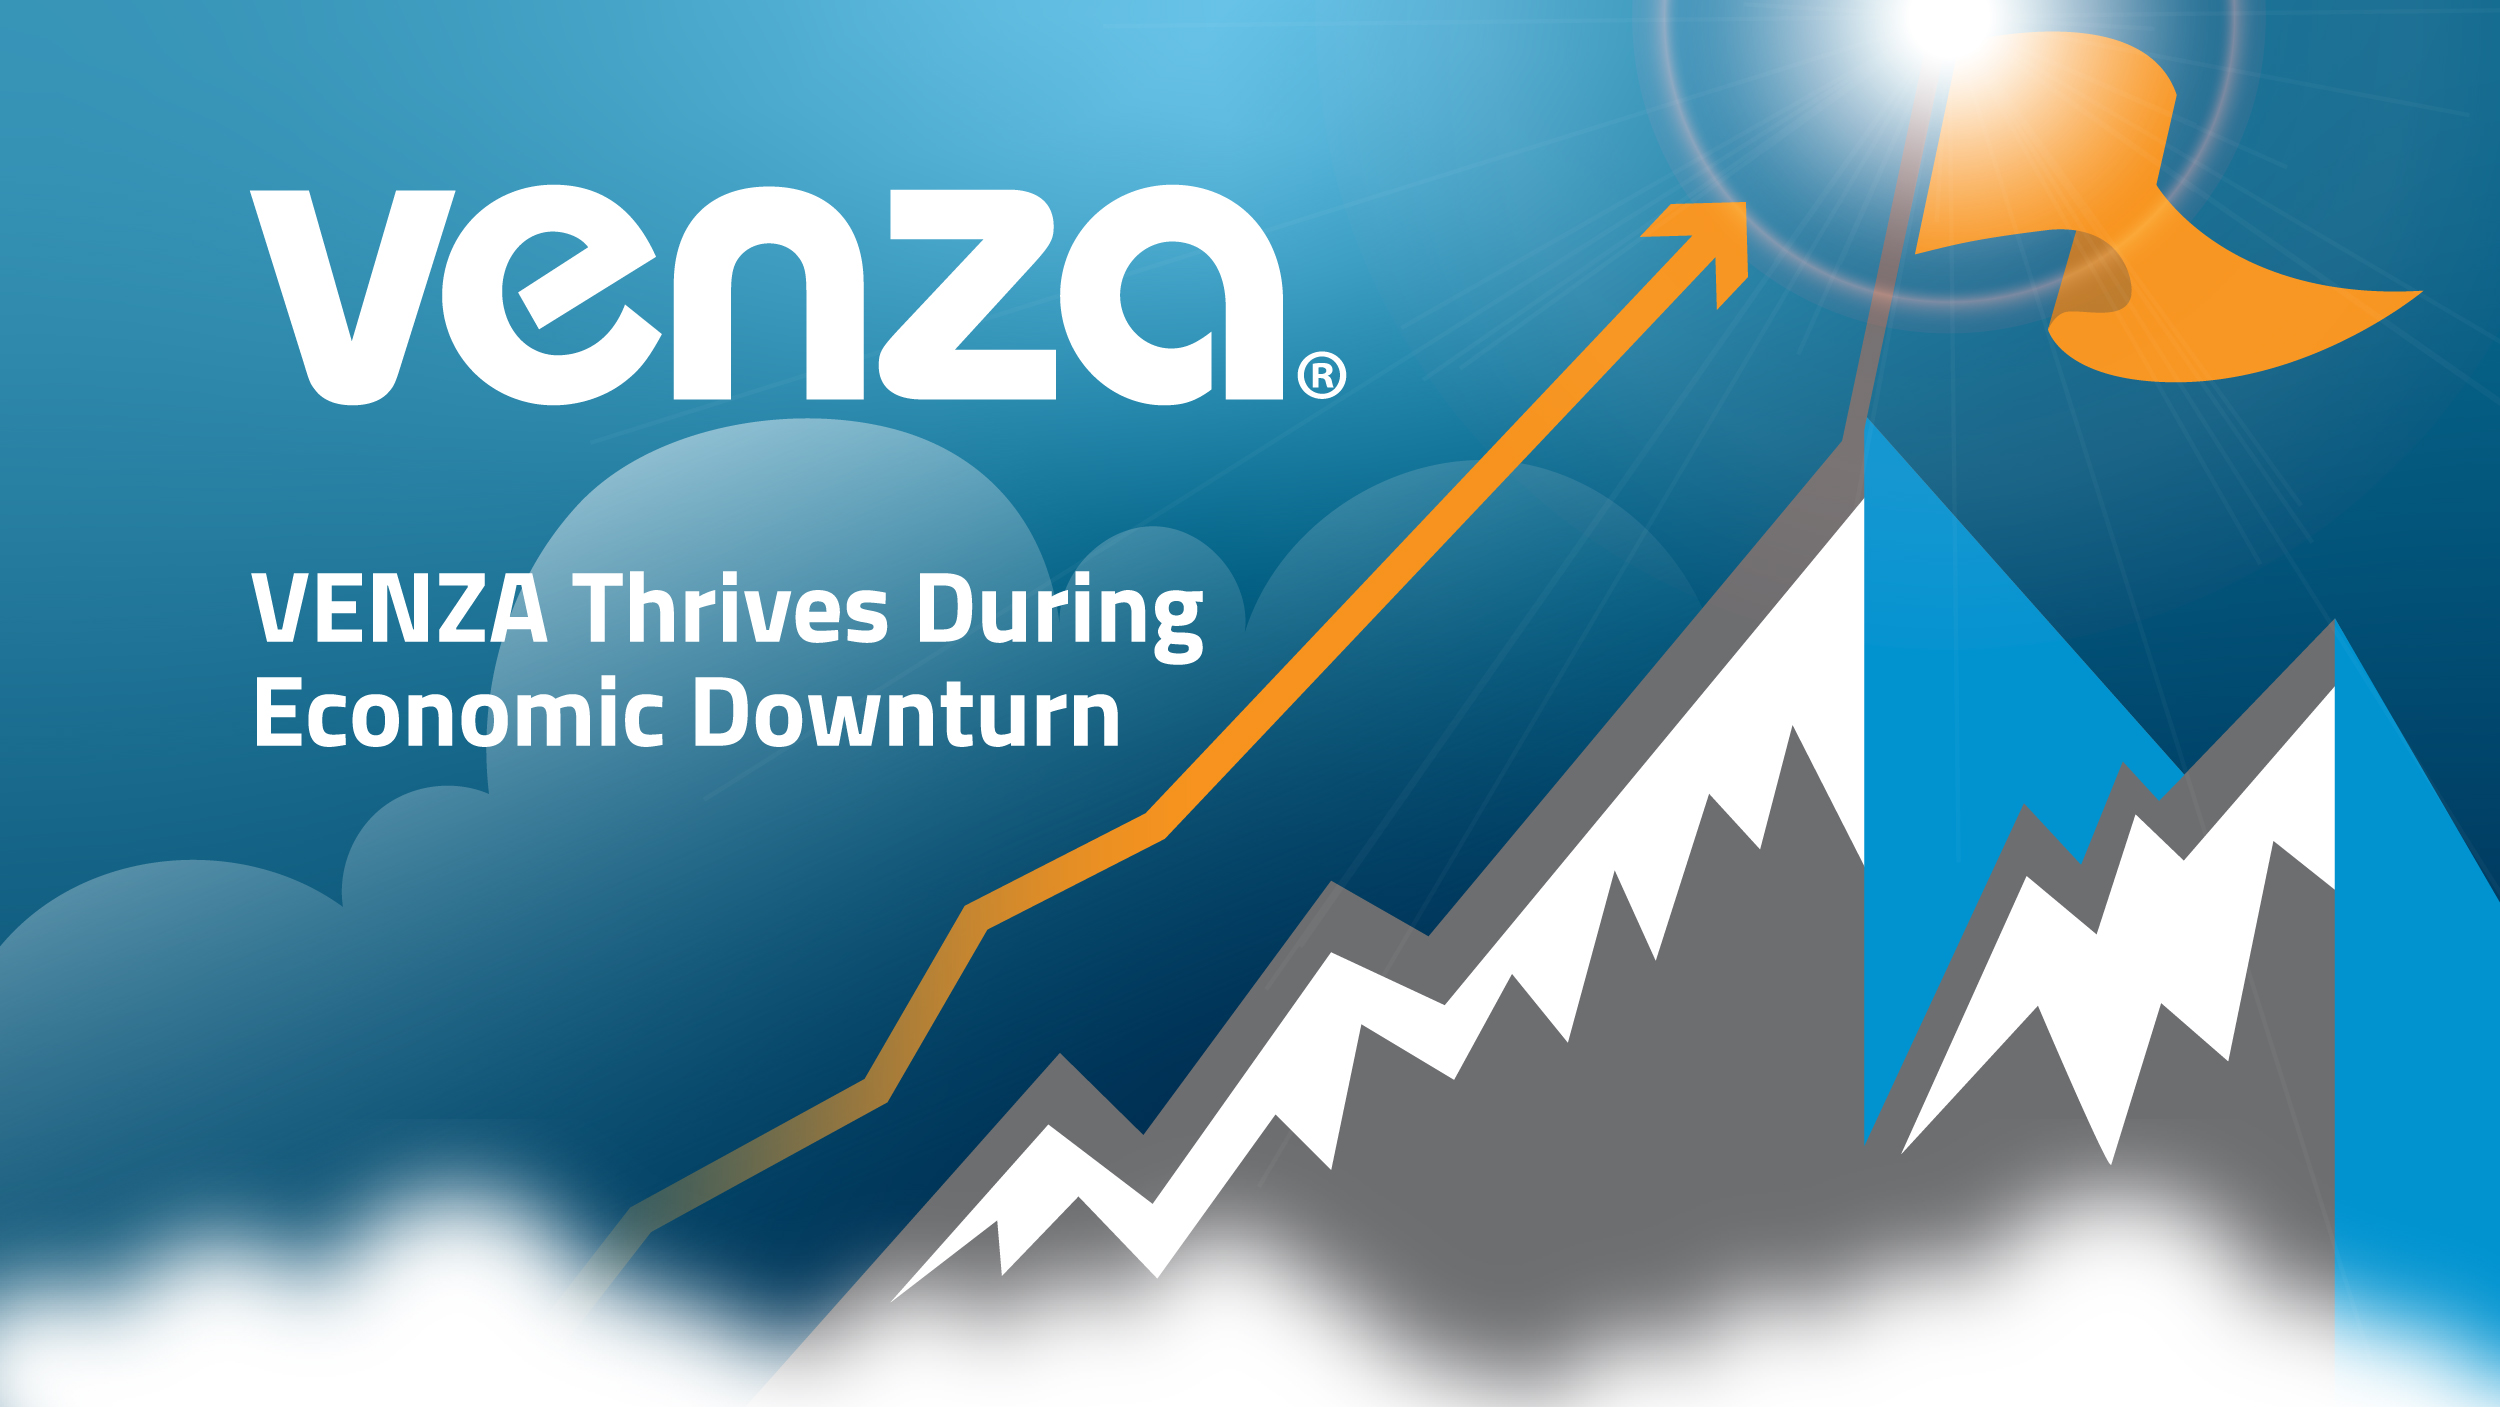 venza thrives during economic downturn graphic